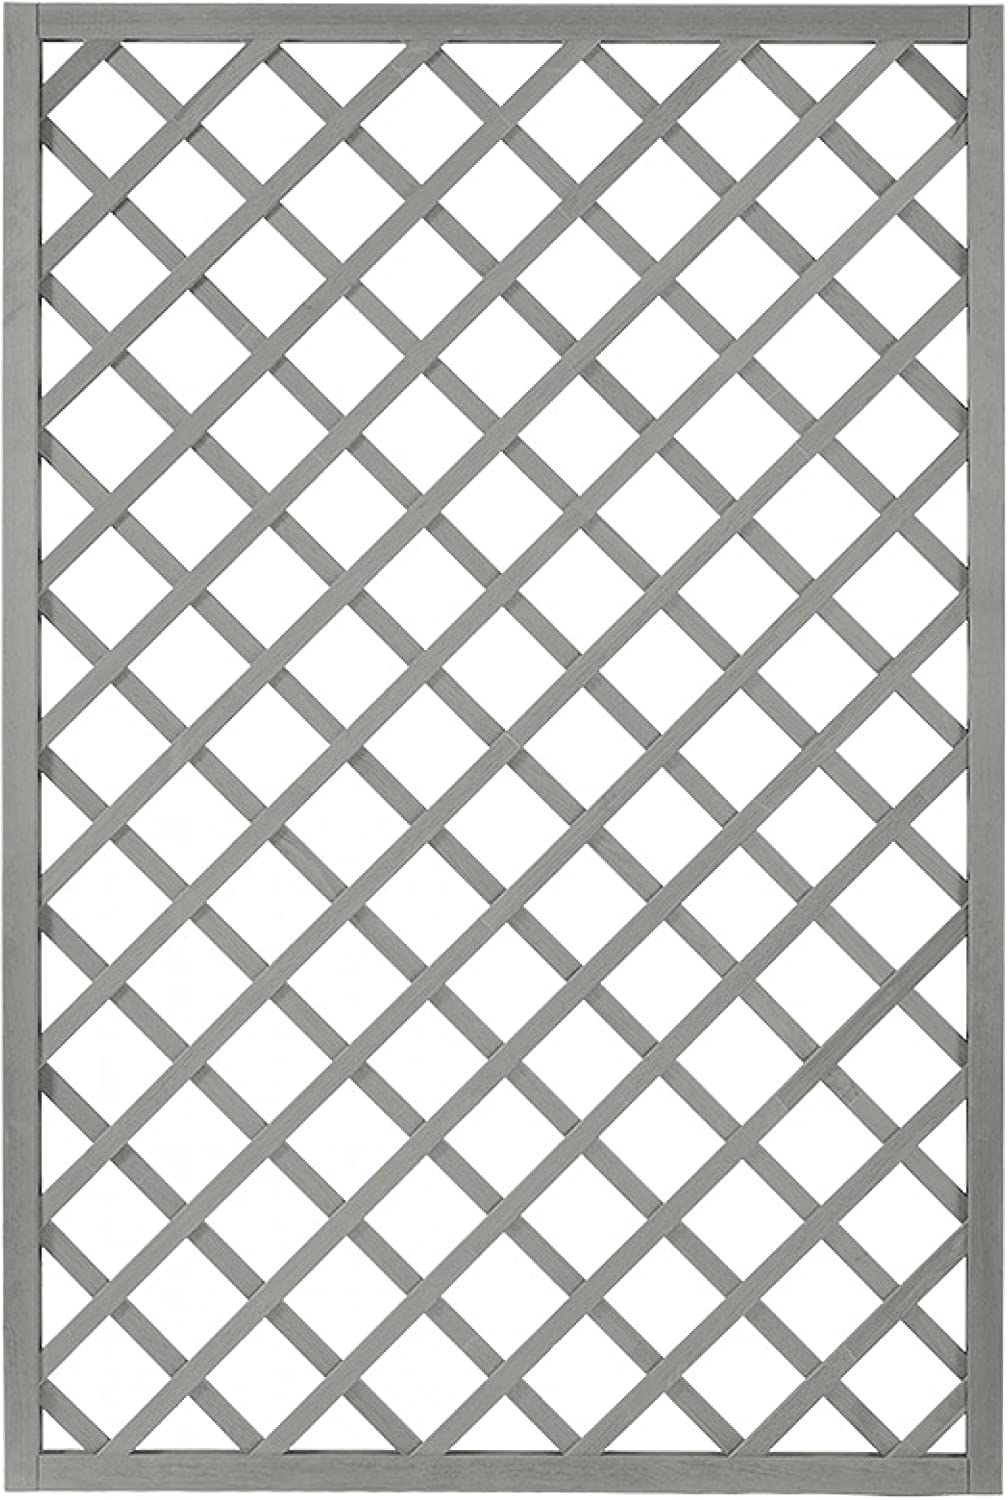 Andrewex wooden fence, fencing panel, garden fence 180 x 120, varnished, grey